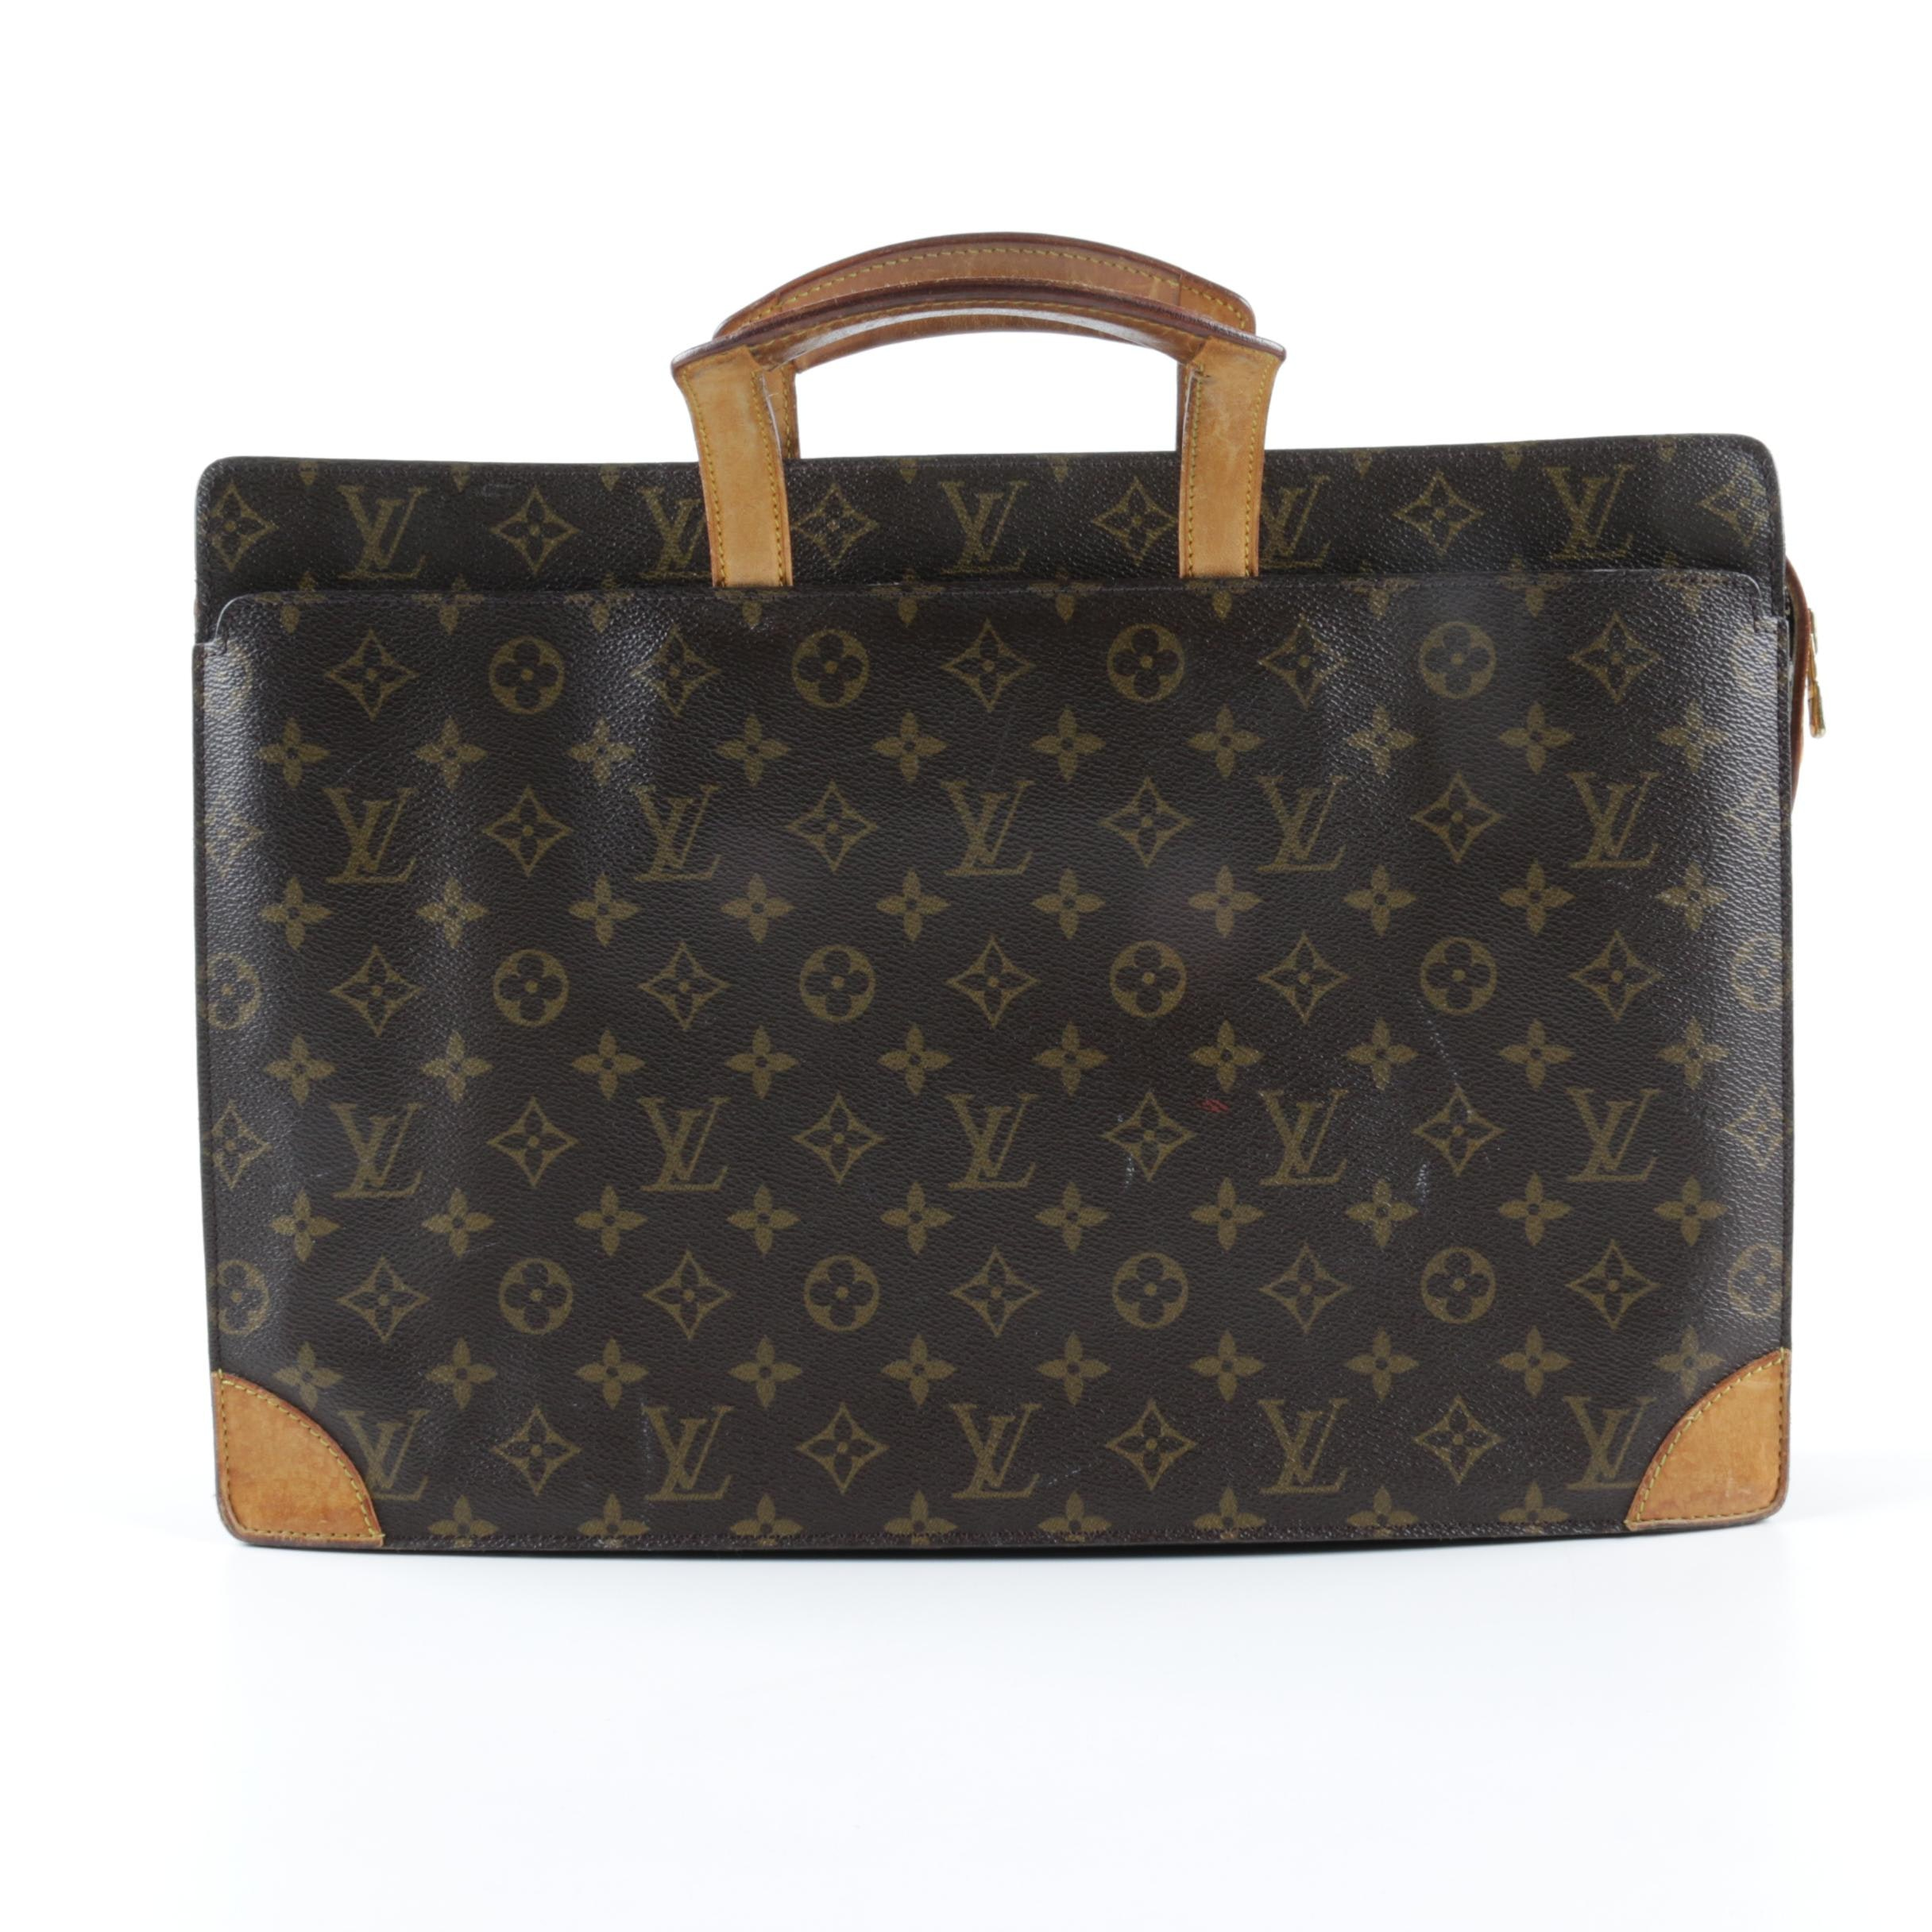 Vintage Louis Vuitton Monogram Briefcase